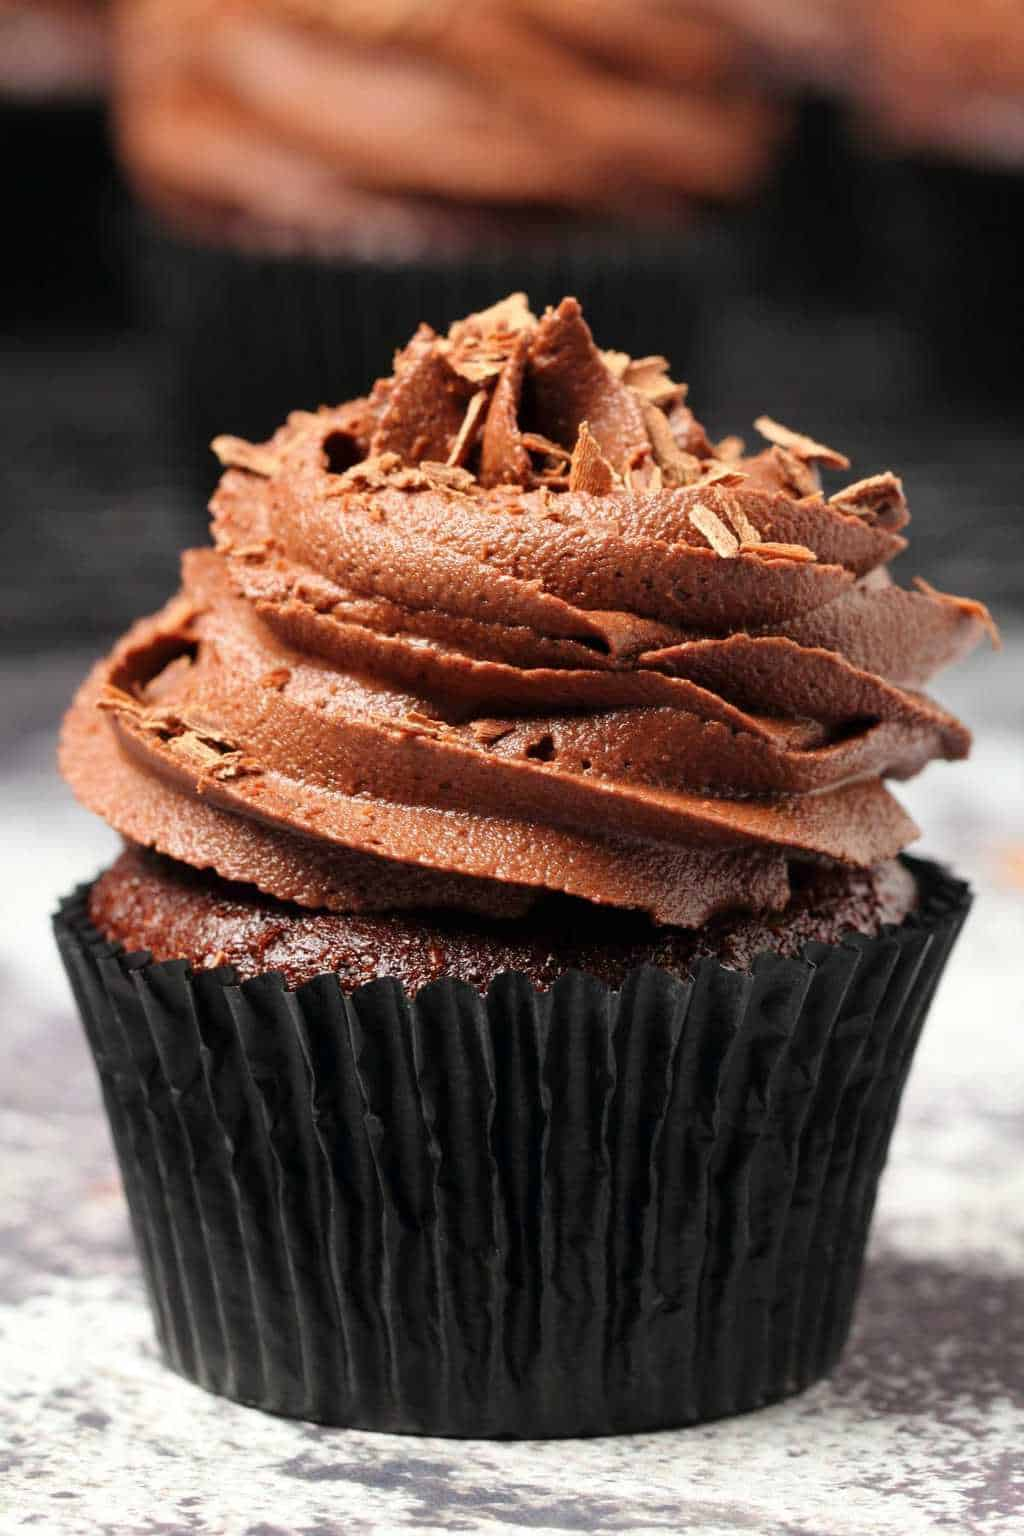 Classic vegan chocolate cupcakes topped with vegan chocolate buttercream and chocolate shavings.